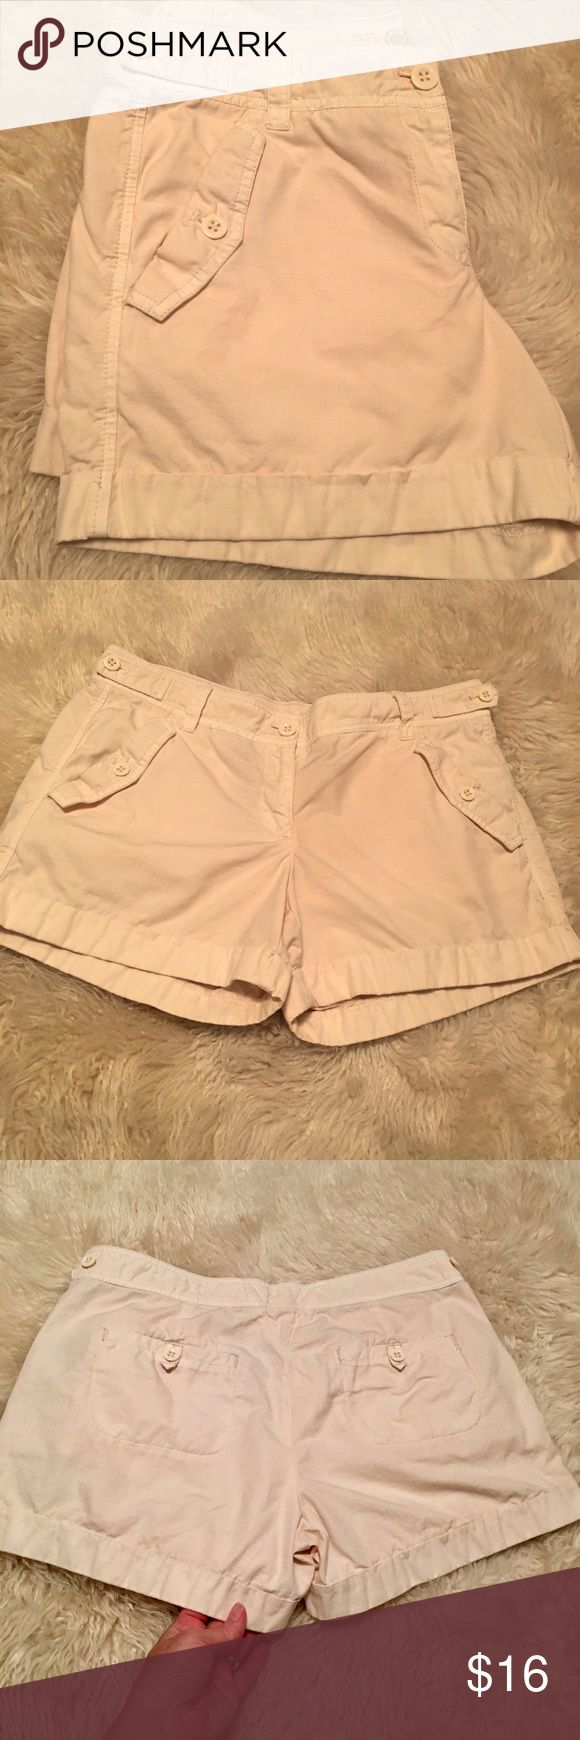 J. Crew chino cream shorts Excellent condition off white/cream colored chino shorts with front pockets and back pockets. 3.5 inch inseam. No stains or tears. J. Crew Shorts